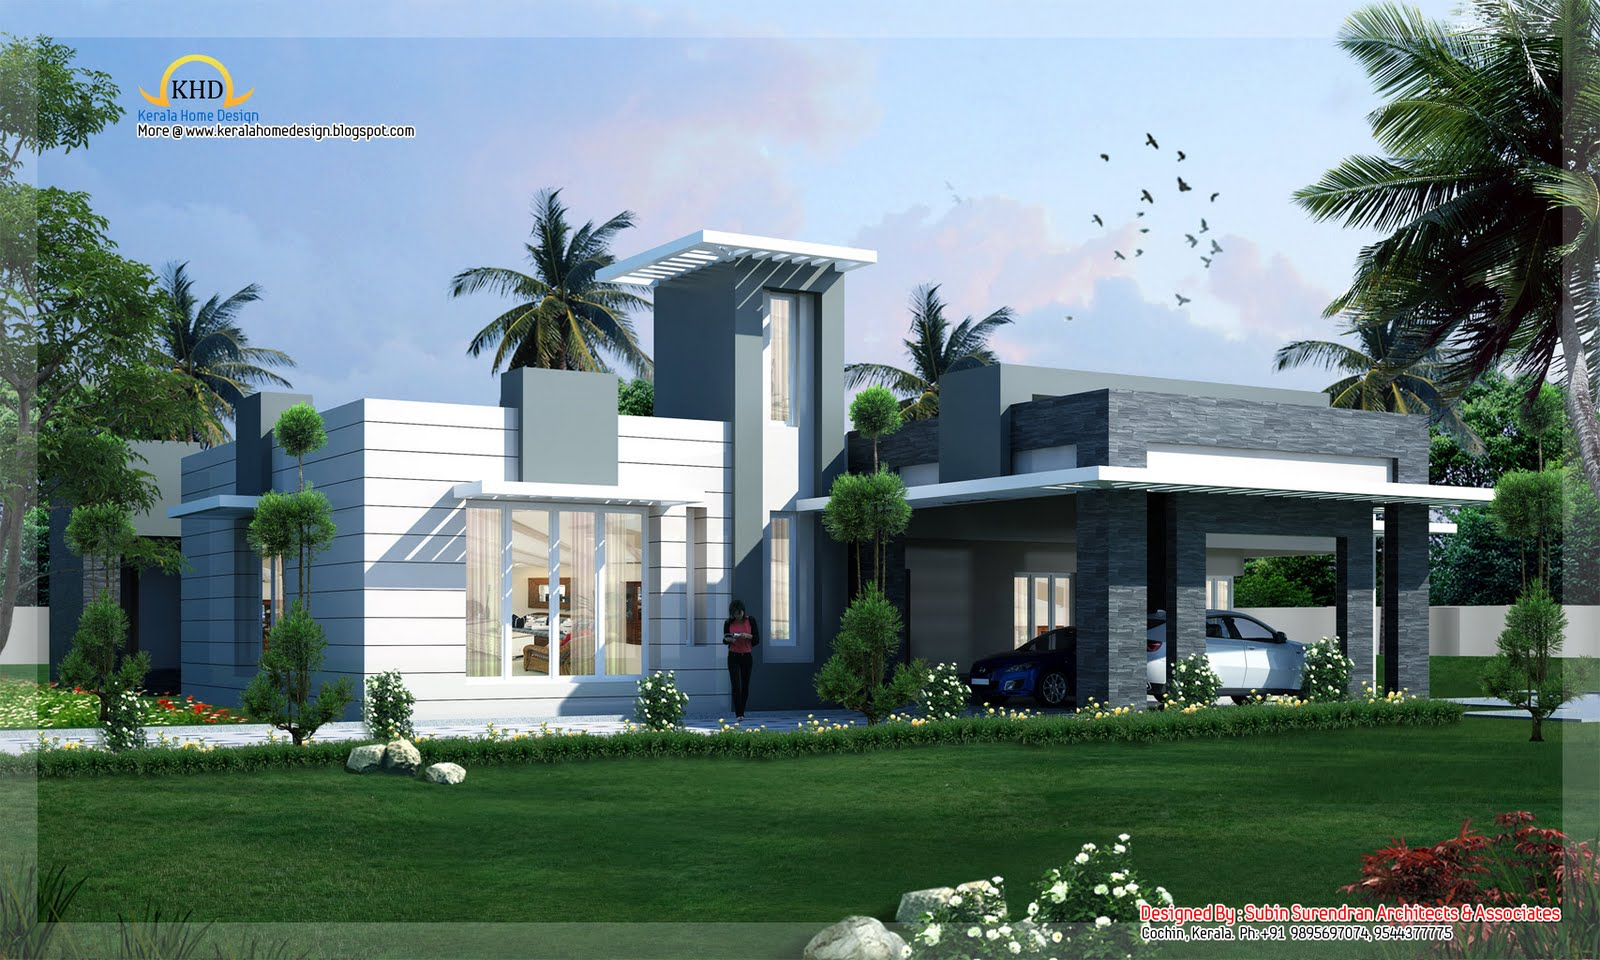 Modern contemporary home design - 4500 Sq Ft. | home appliance